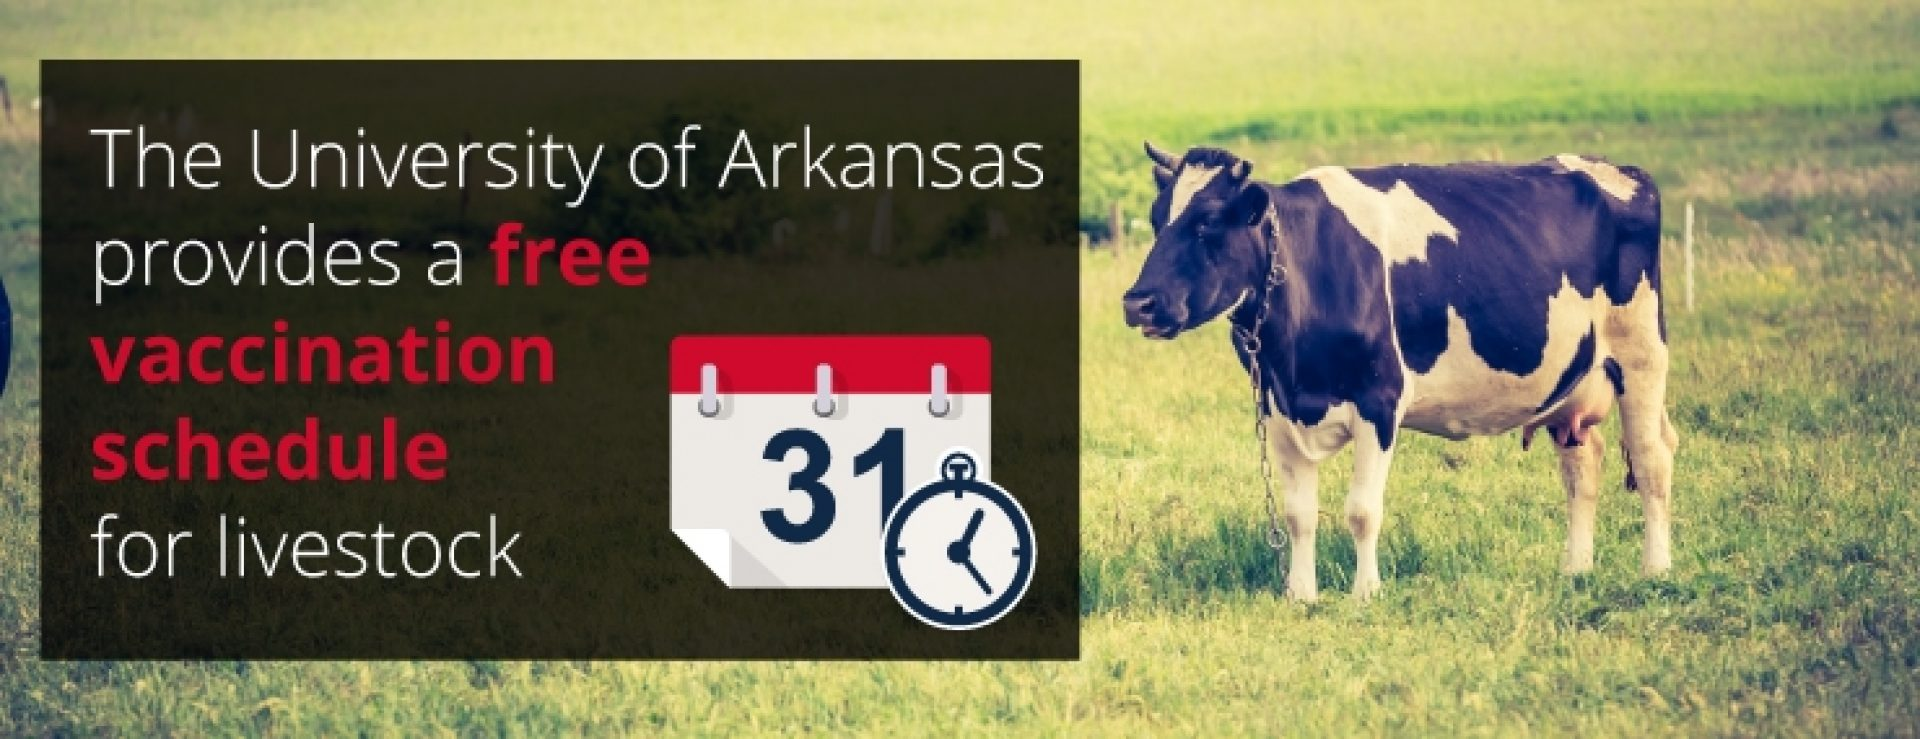 The University of Arkansas provides a free vaccination schedule for livestock.